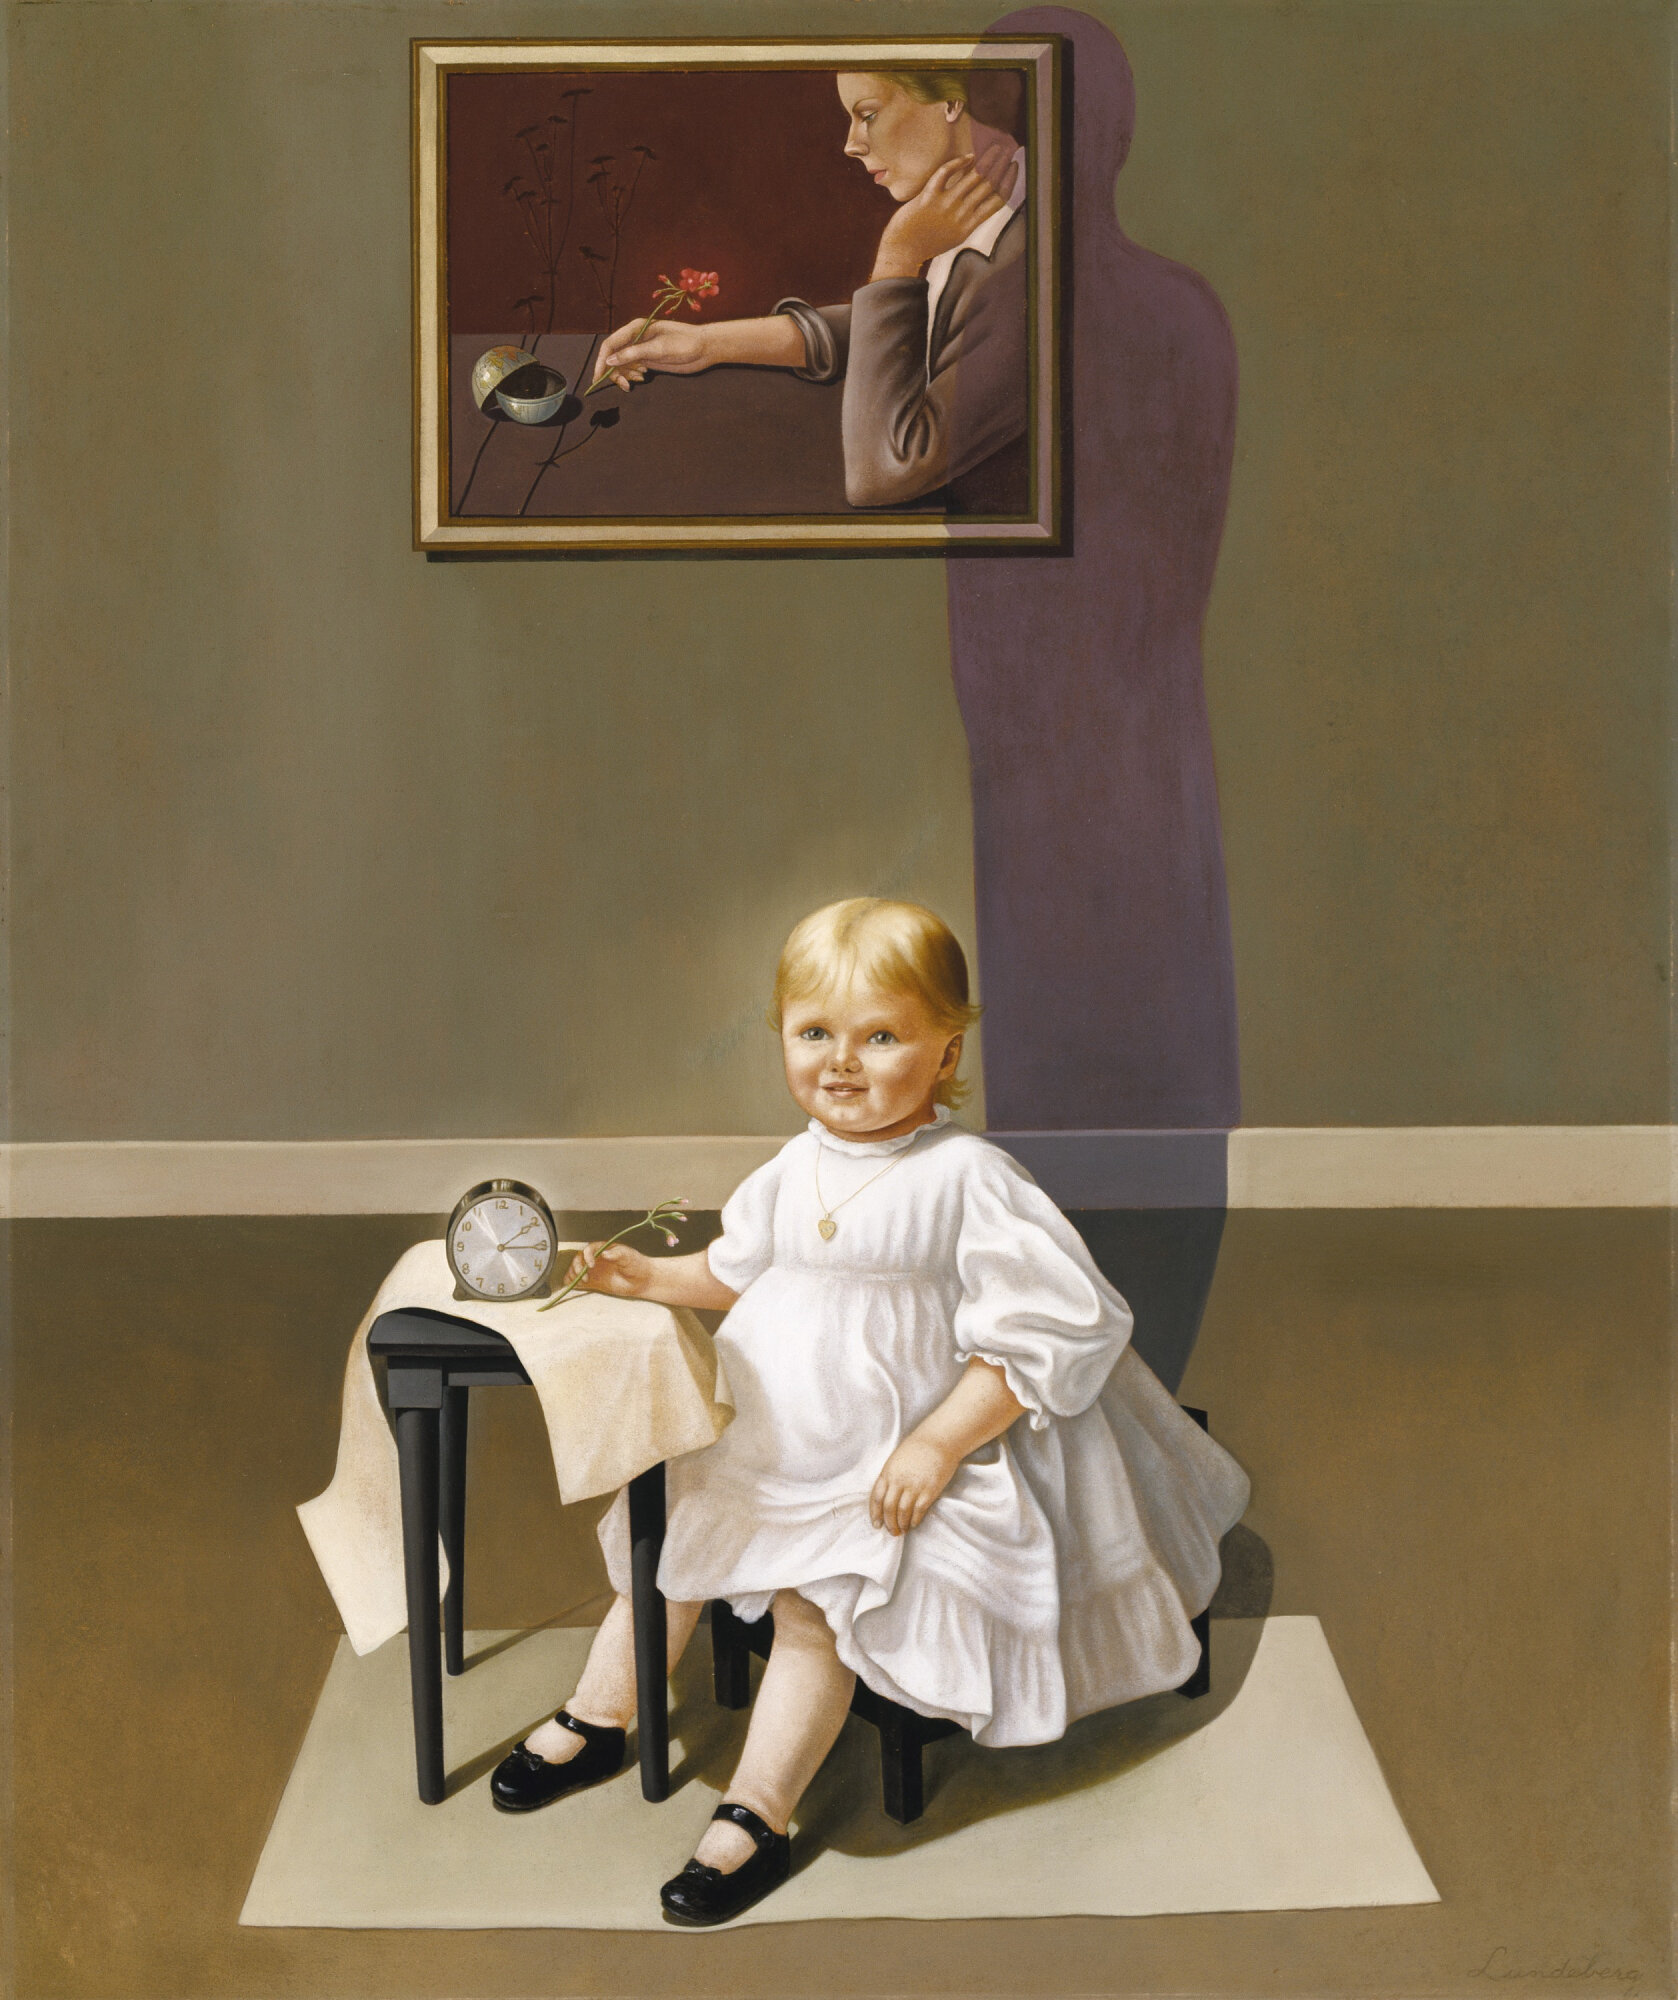 Double Portrait of the Artist in Time,  1935 oil on fiberboard 47 3/4 x 40 inches; 121.3 x 101.6 centimeters  Smithsonian American Art Museum